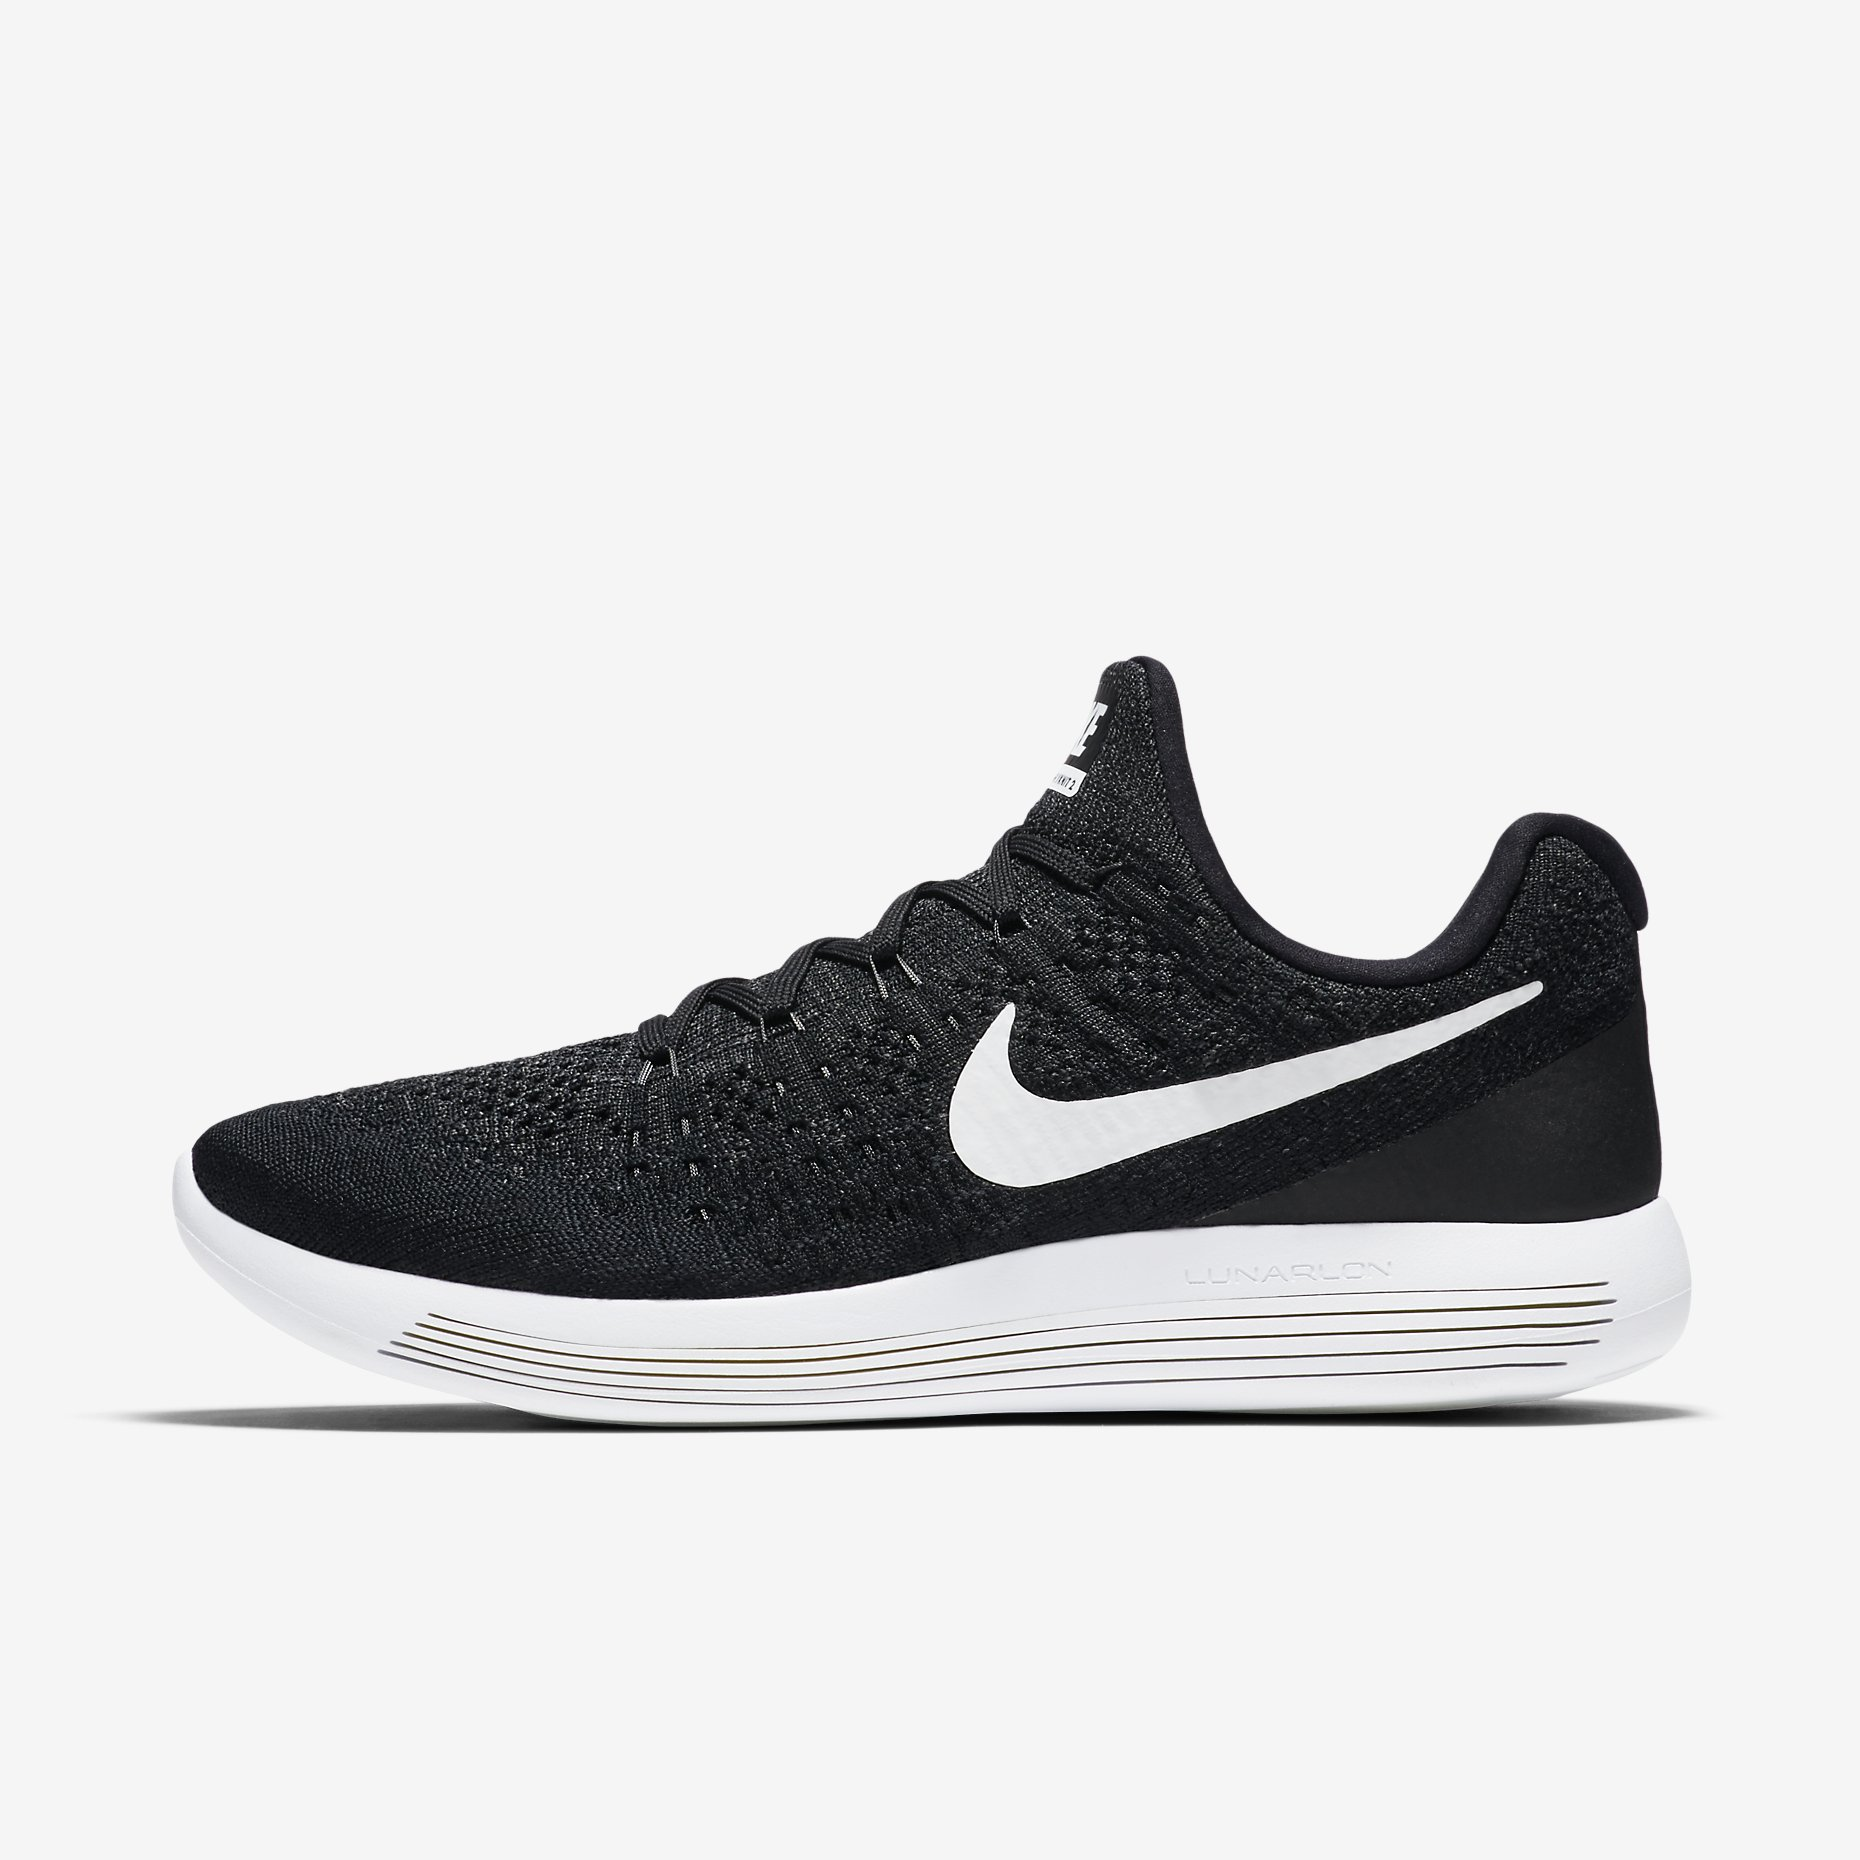 083ad887bf7 Nike LunarEpic Low FlyKnit 2 Mens Running Shoes - Alton Sports